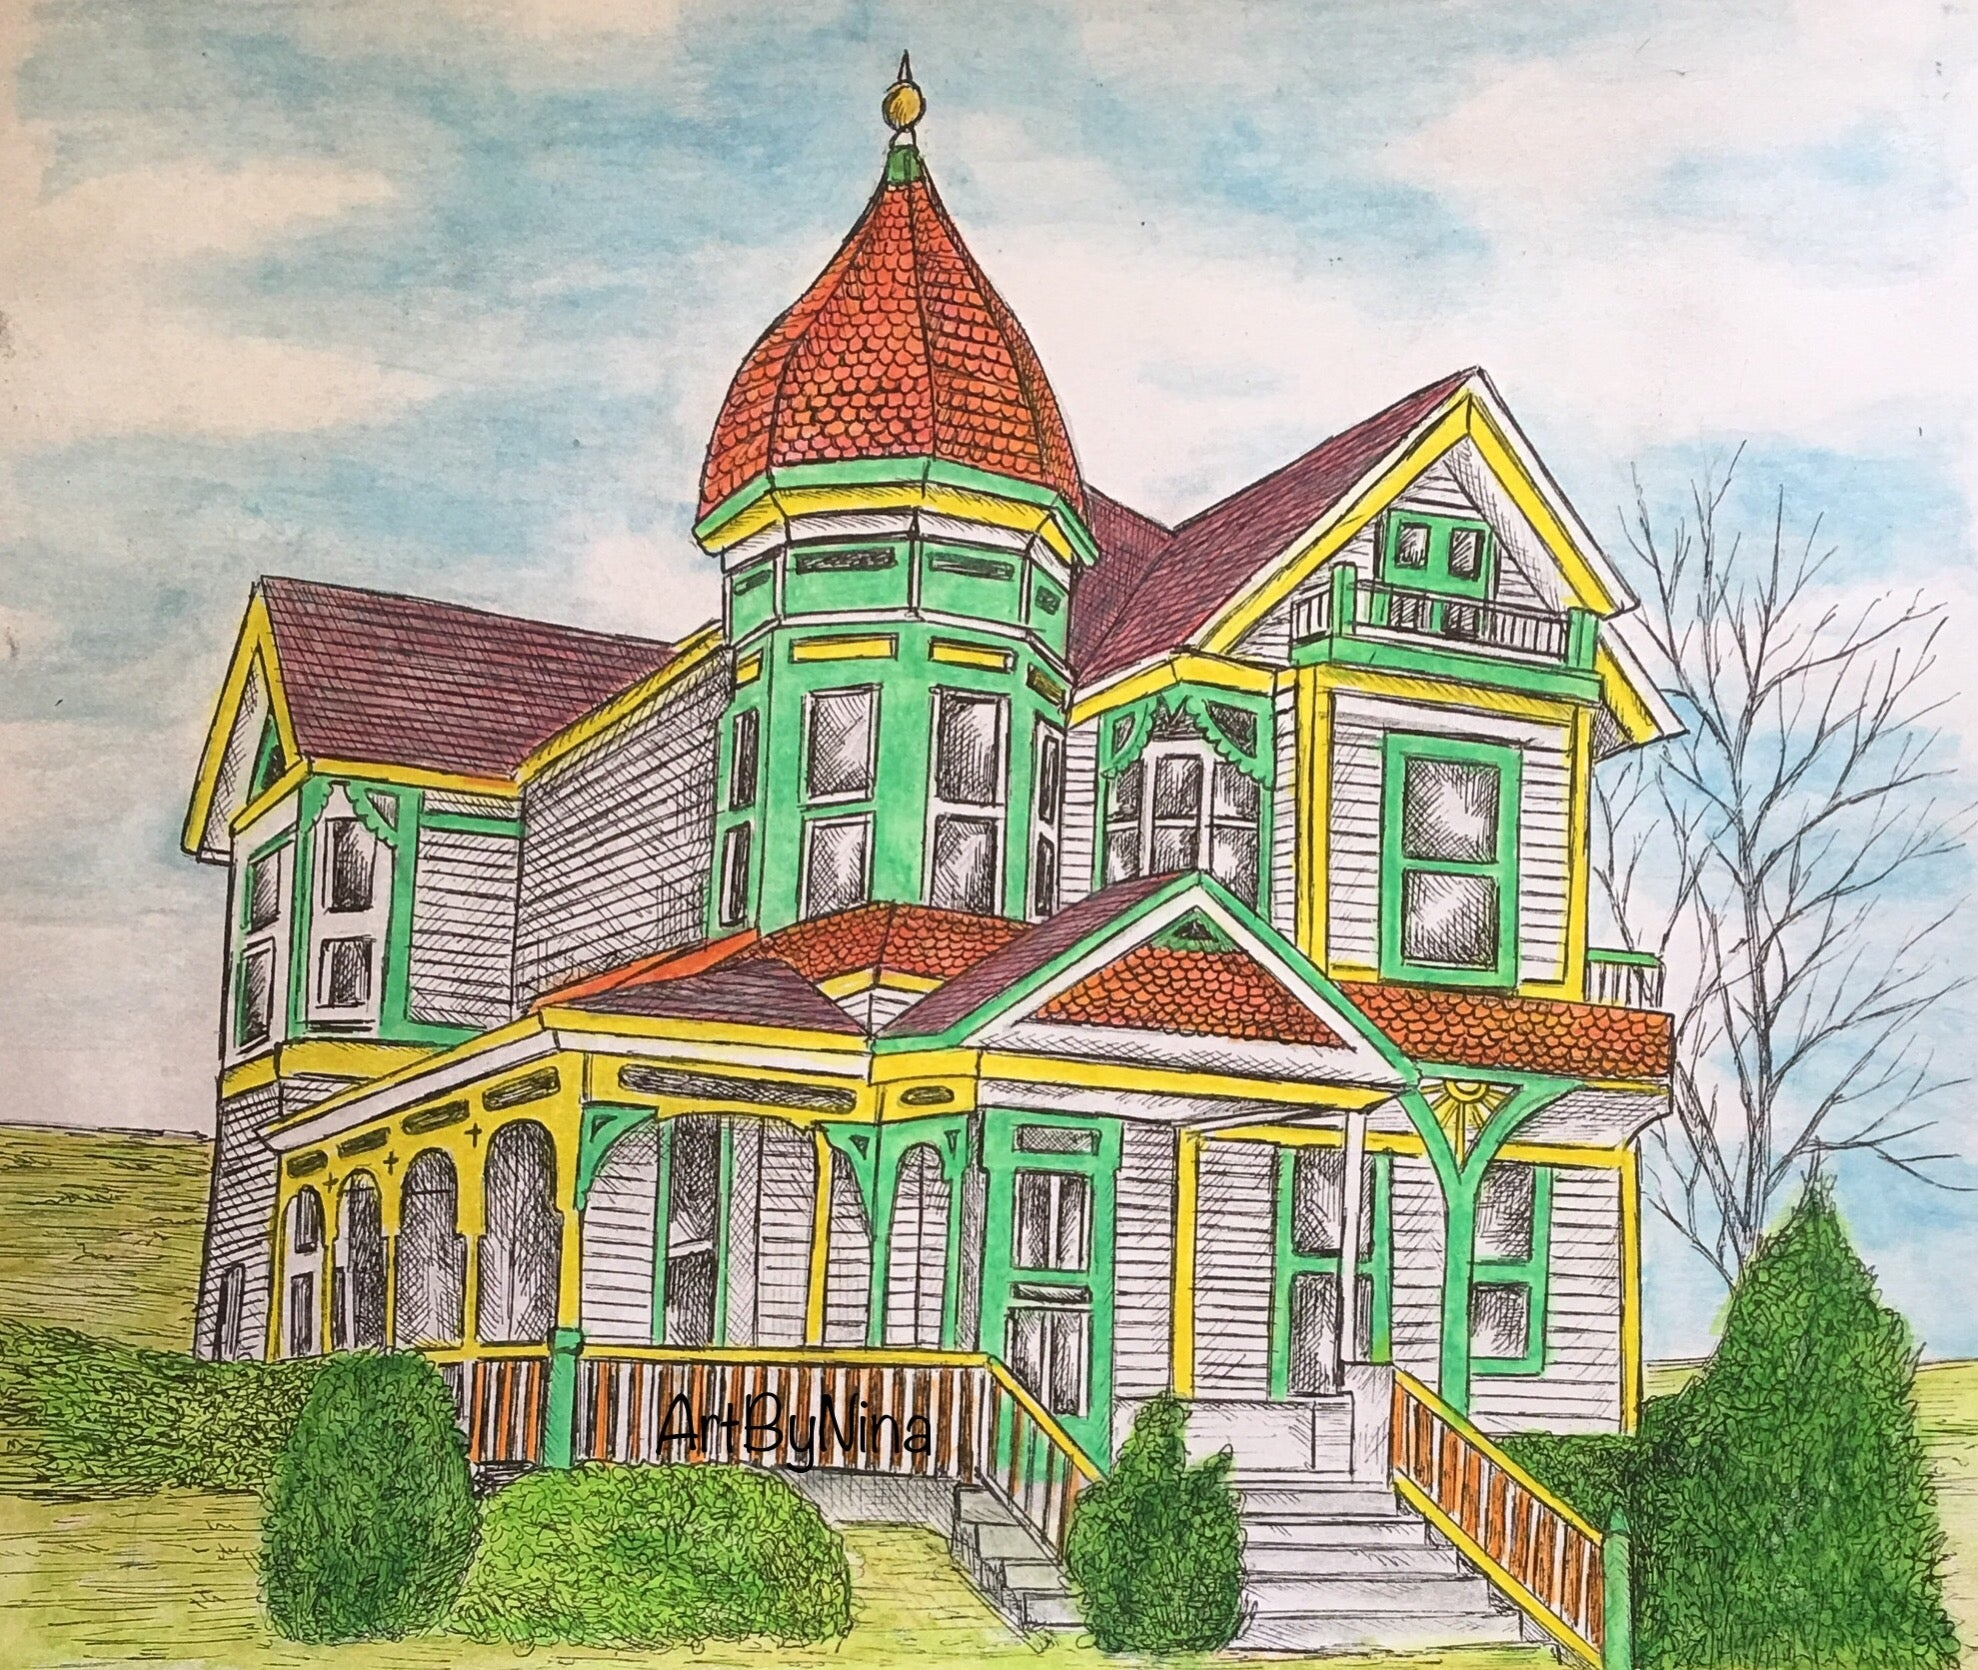 Architecture Print - Victorian House on Hill #191